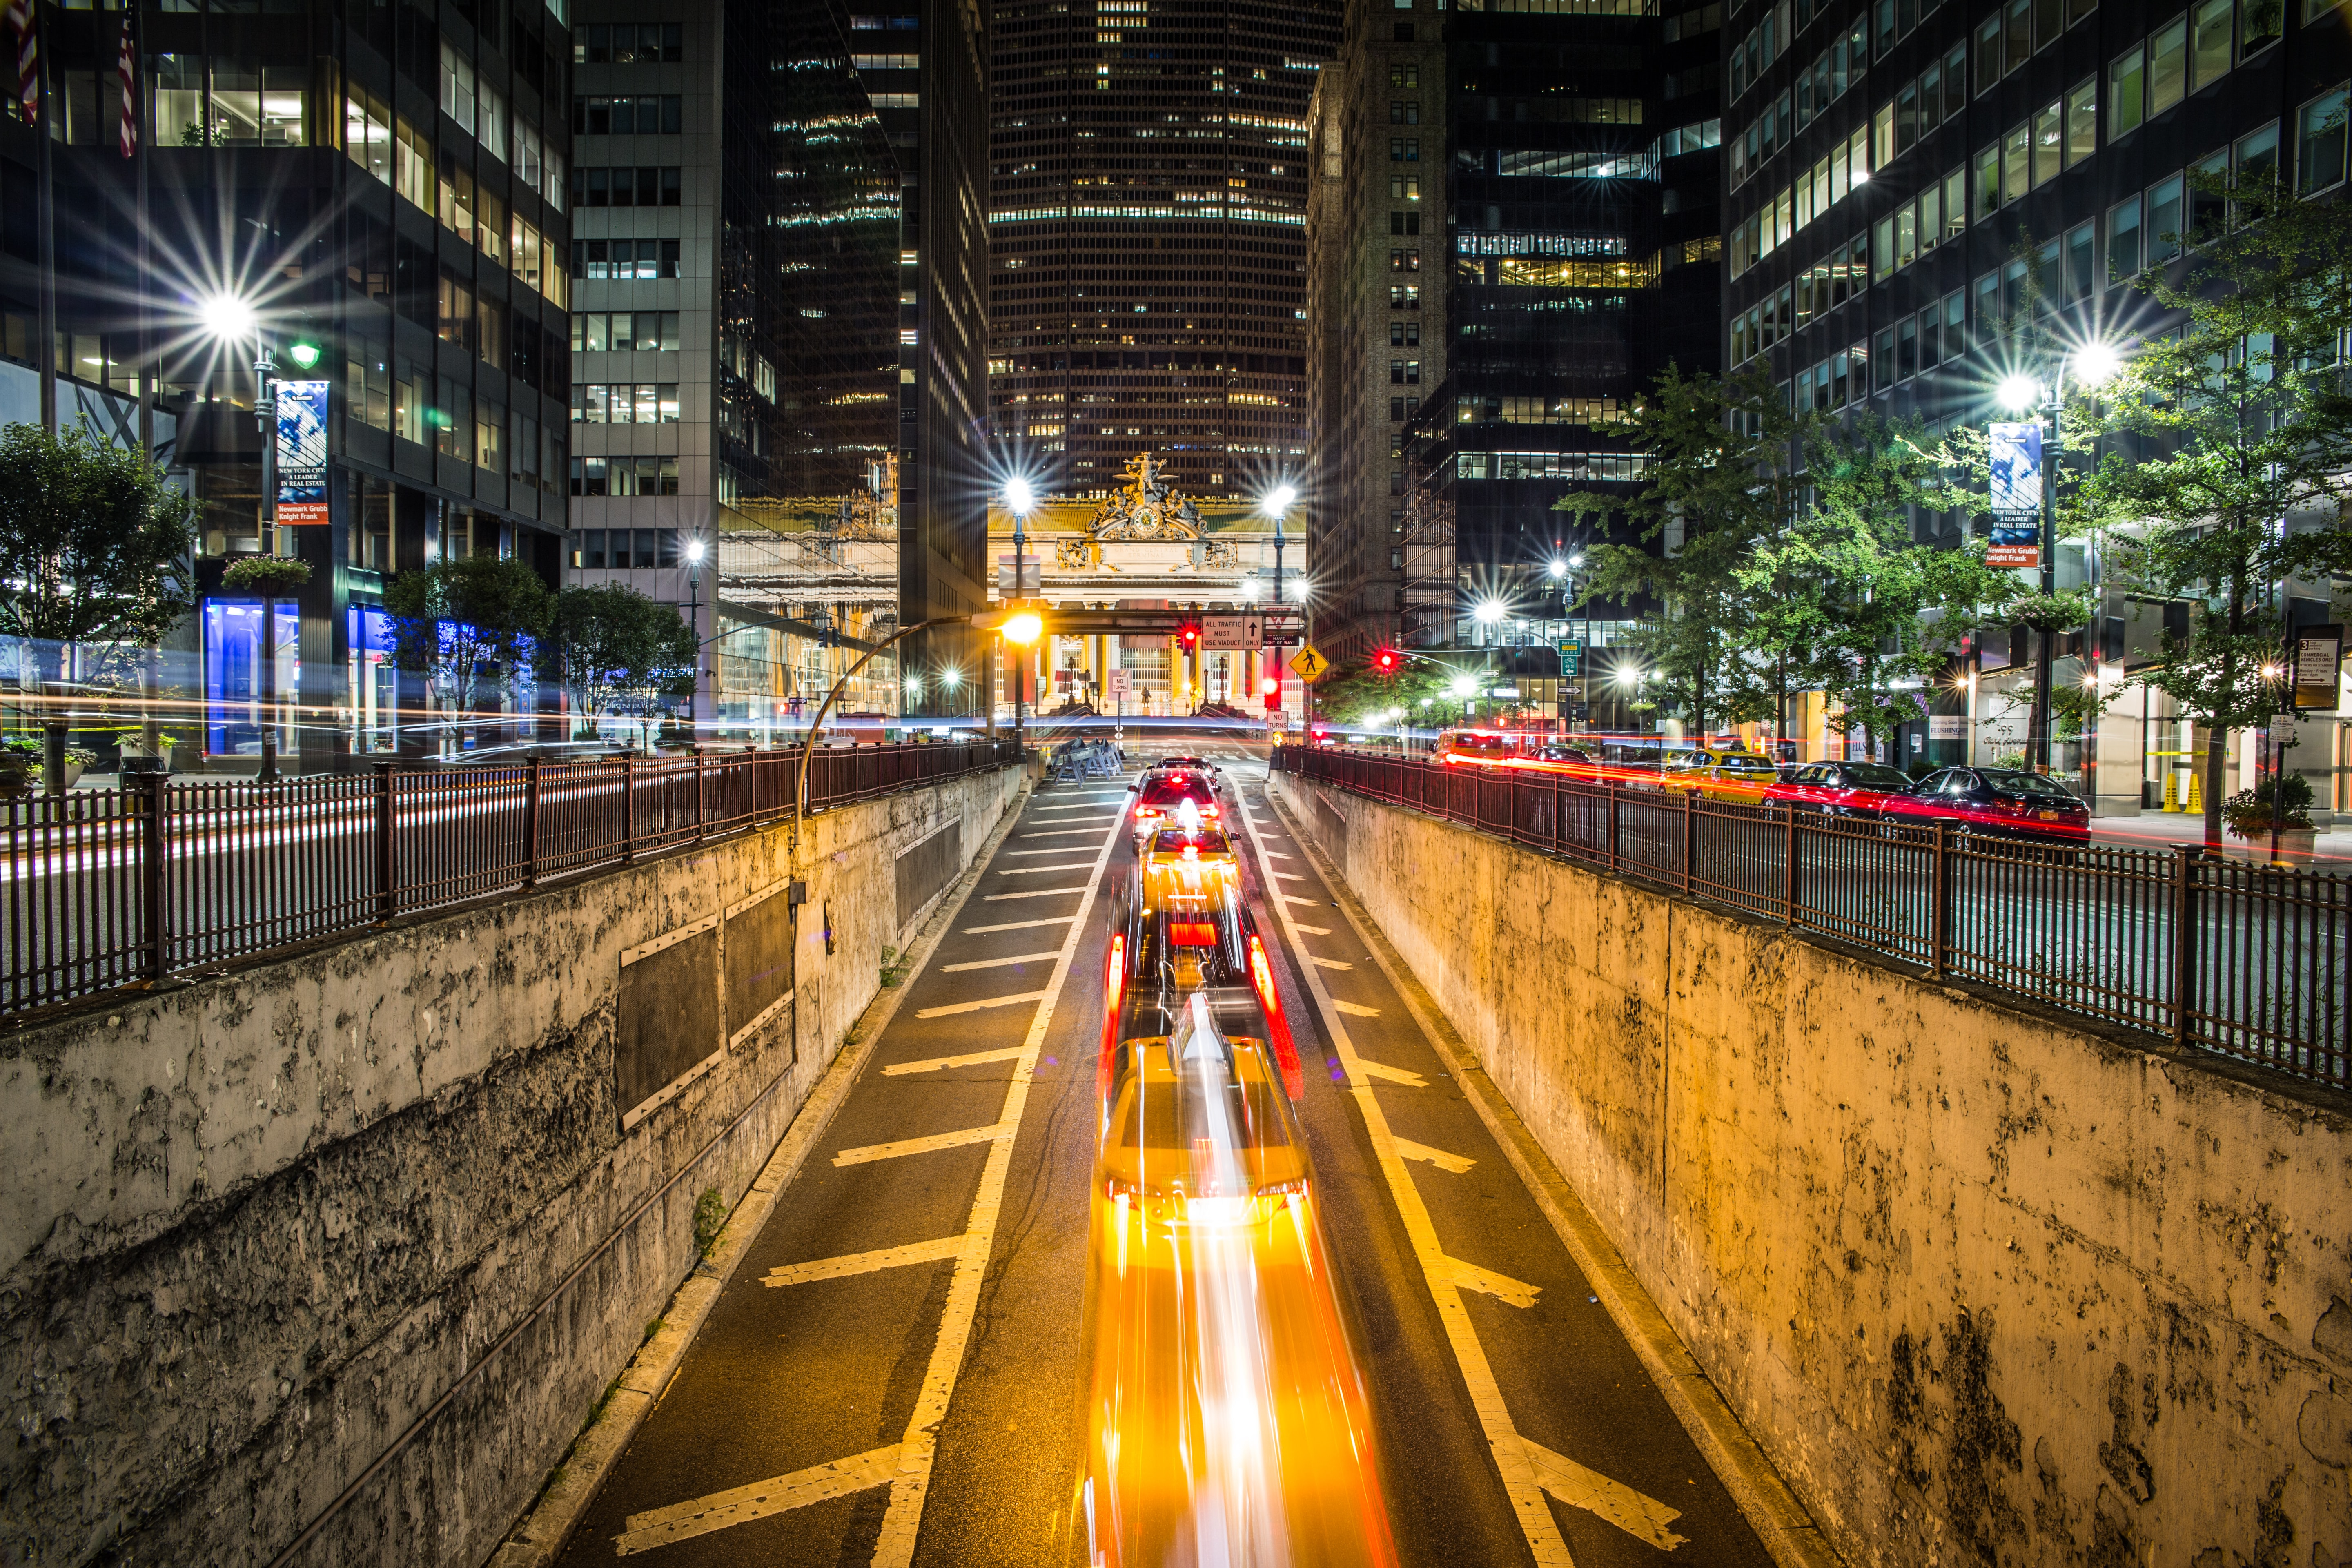 Time lapse shot of New York city center street at night-time surrounded by skyscrapers